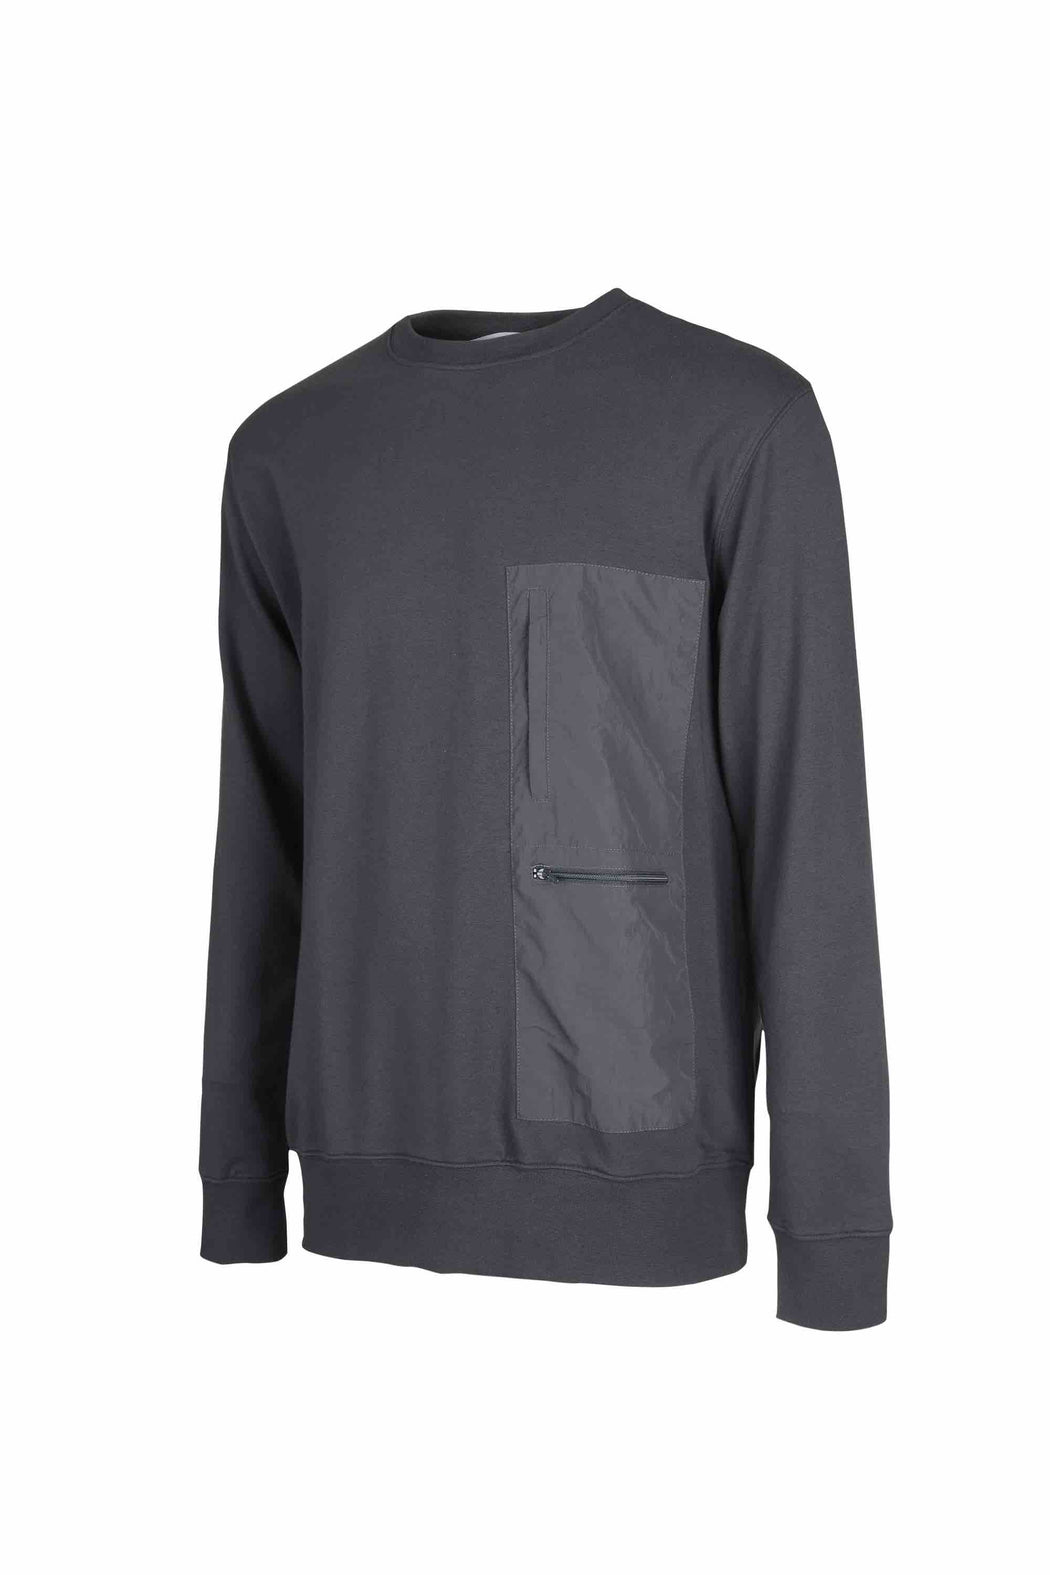 Side view of Men Nylon Pocket Blocked Sweatshirt, made with organic cotton in Grey